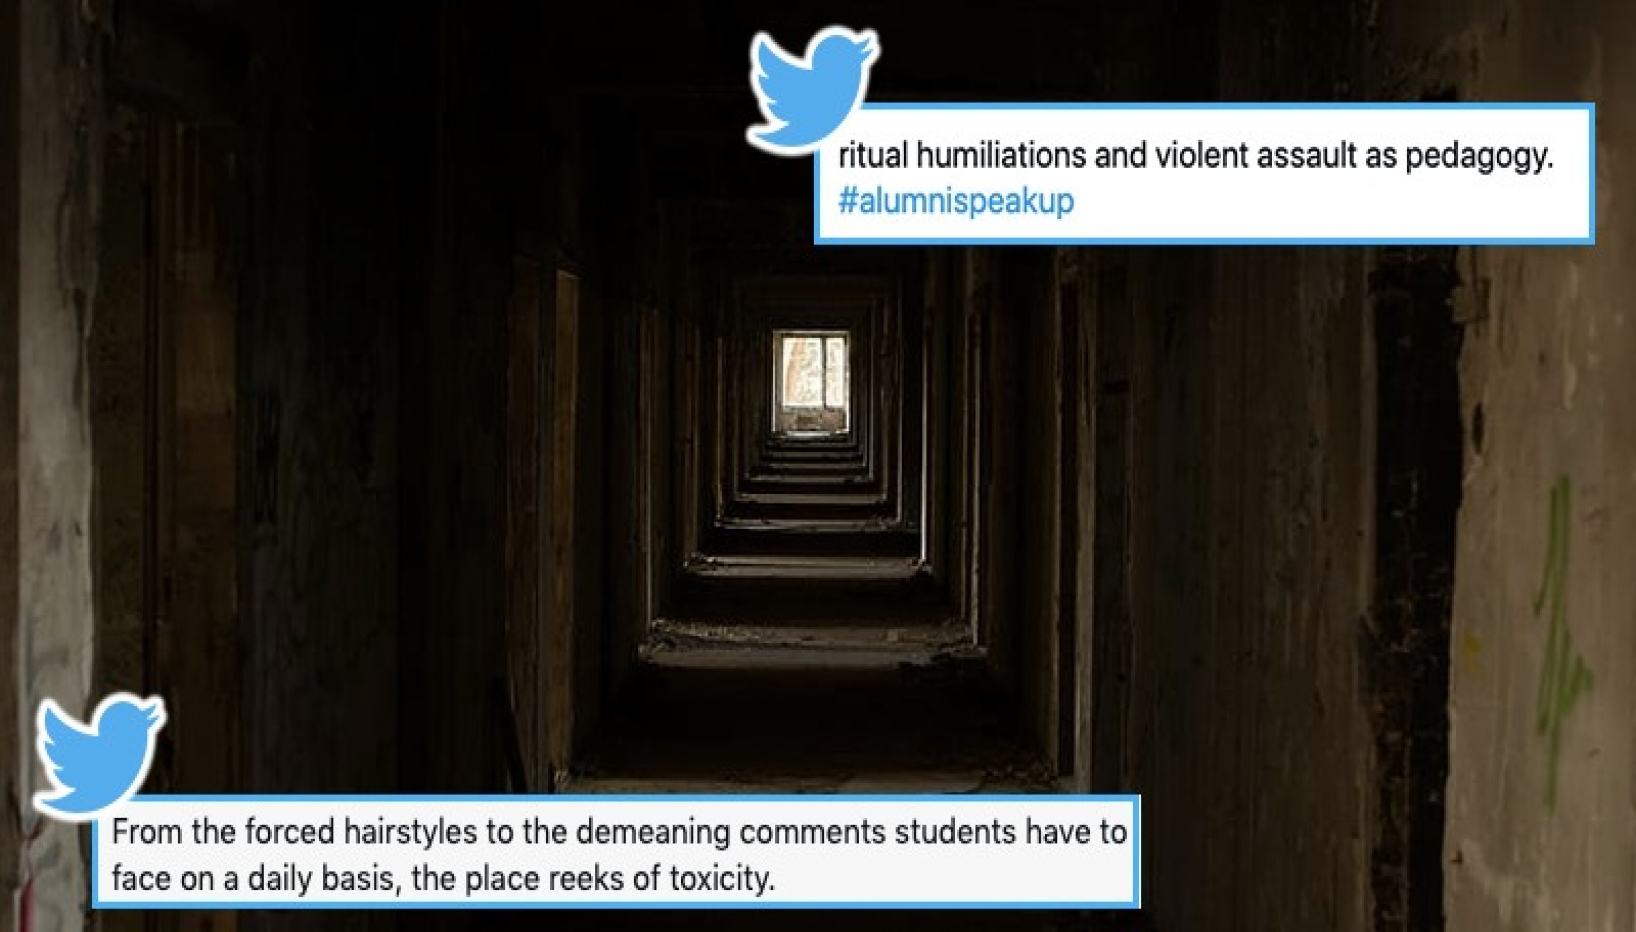 Reddit Exposé Opens Up Conversation About More Institutions With #Alumnispeakup Trend